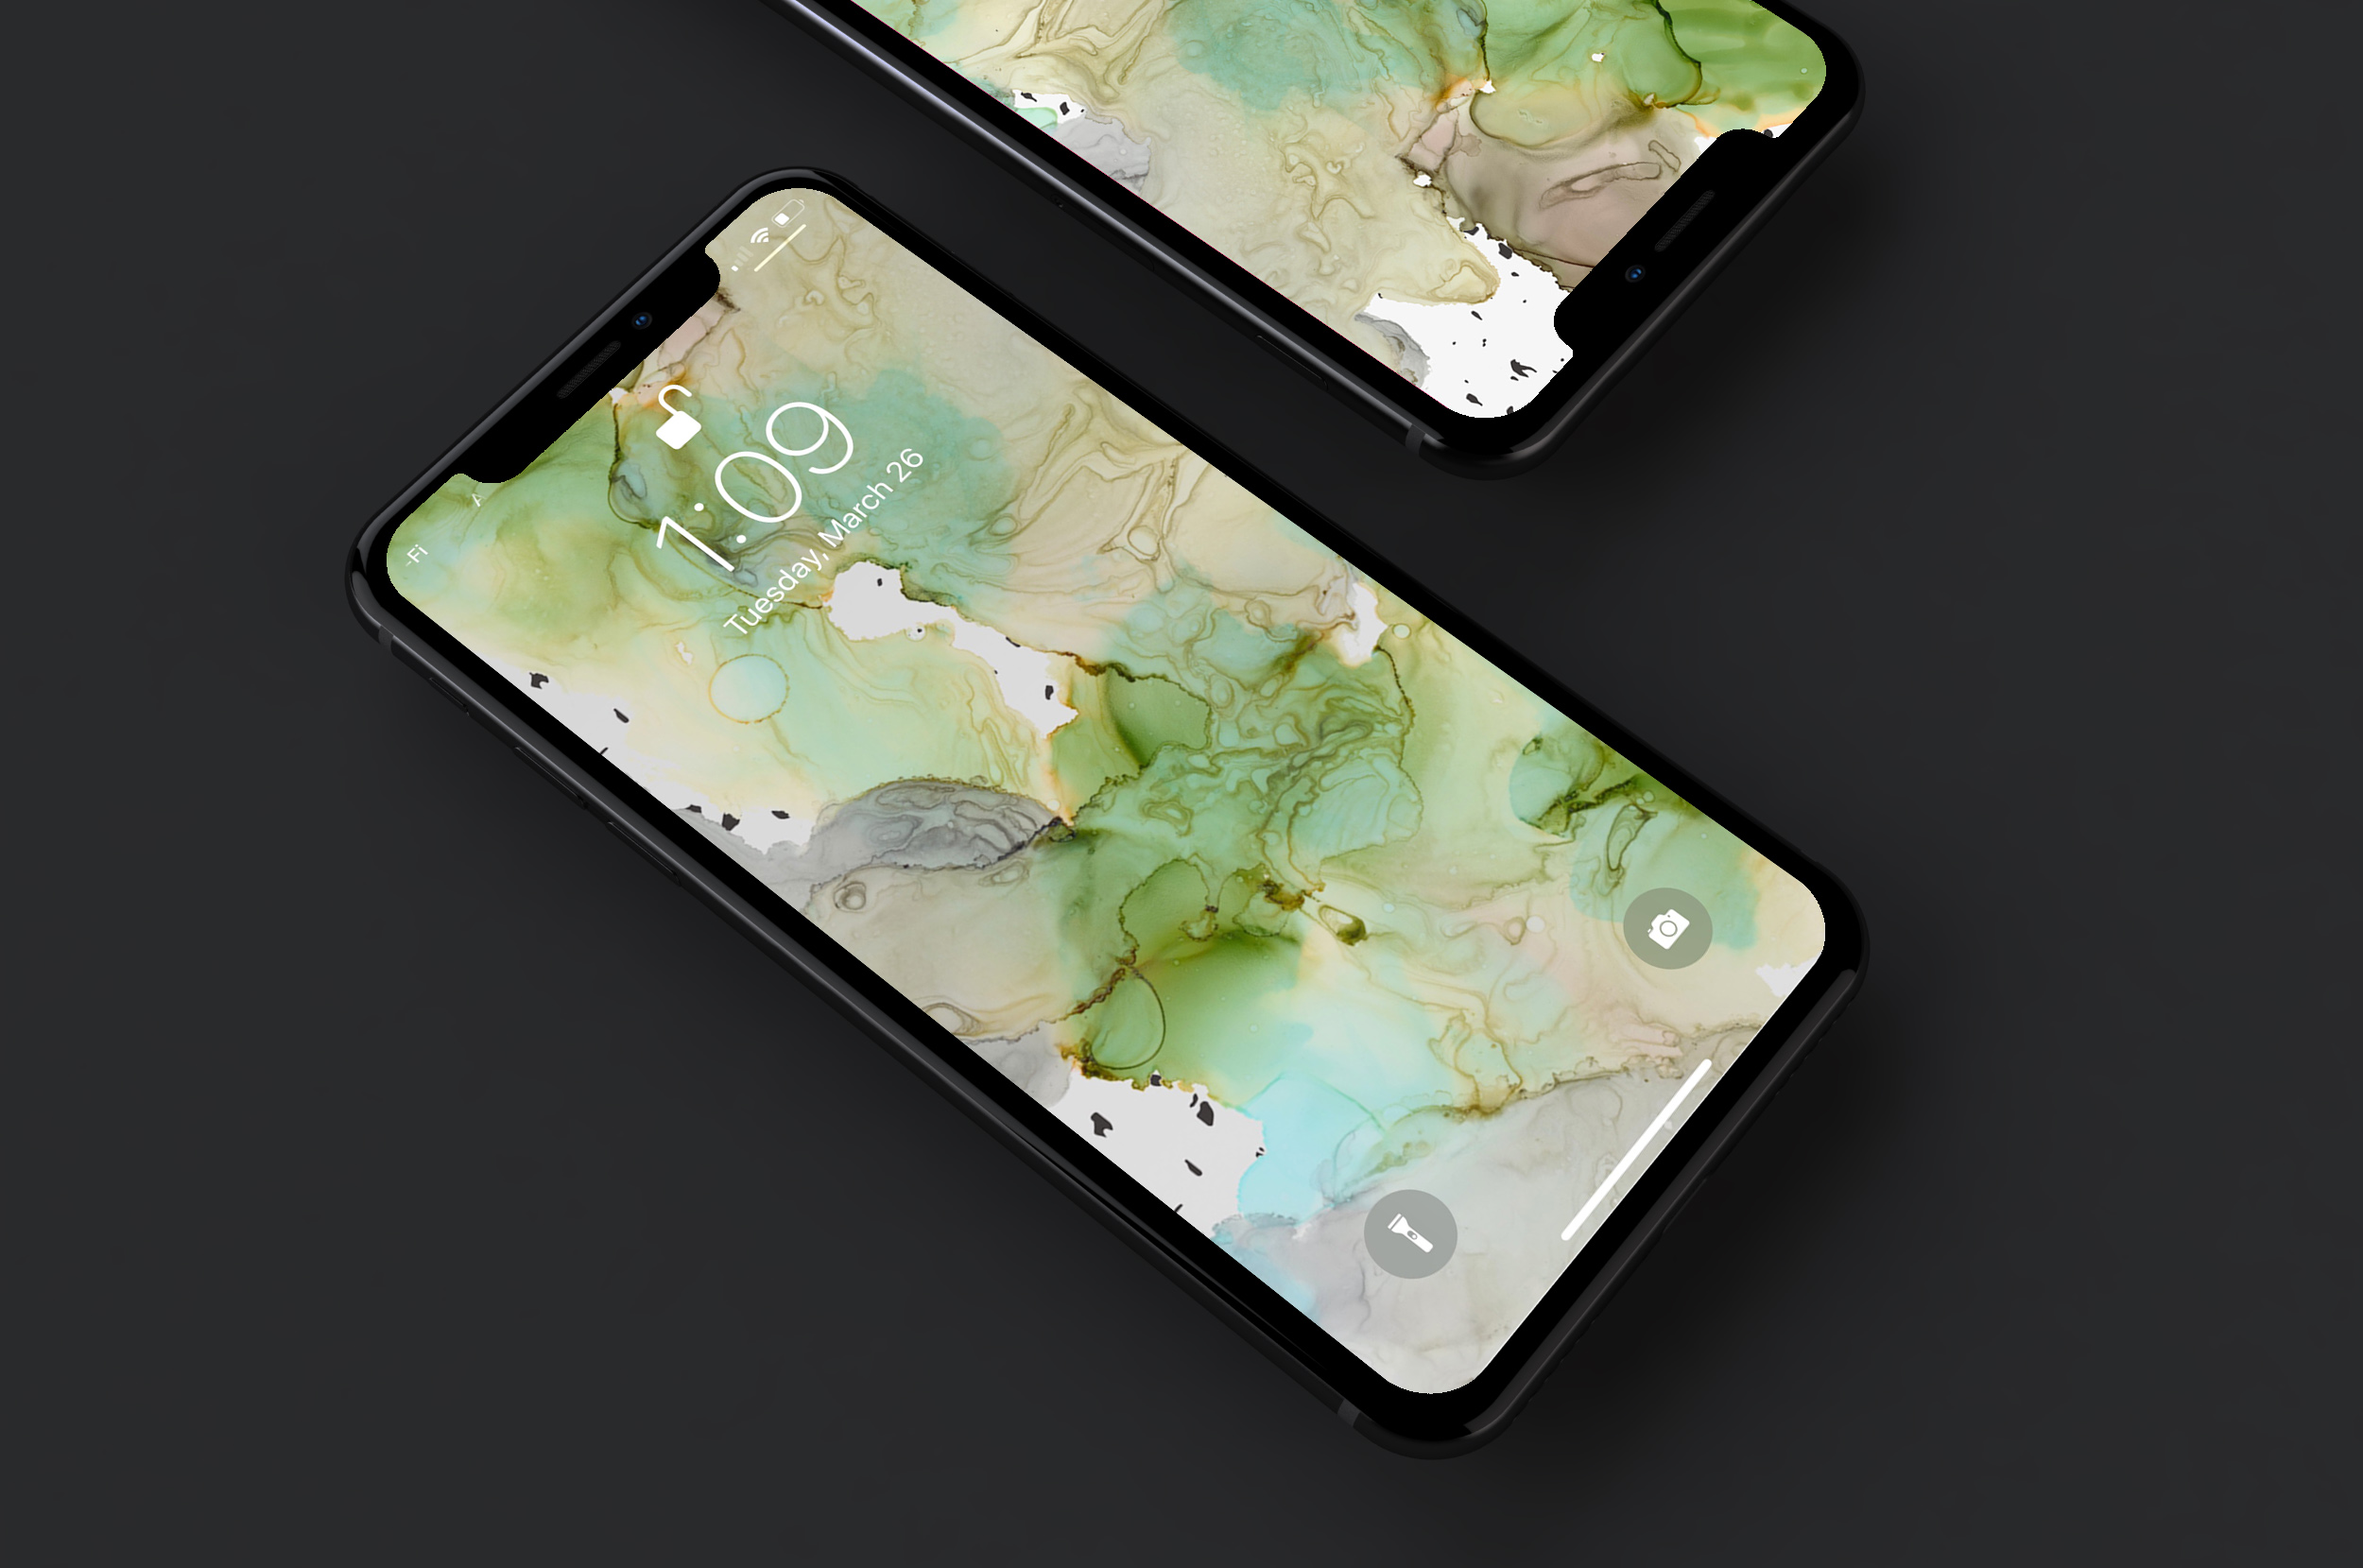 Fluid Wallpaper - Original art wallpaper formatted for iPhone X + similar devices